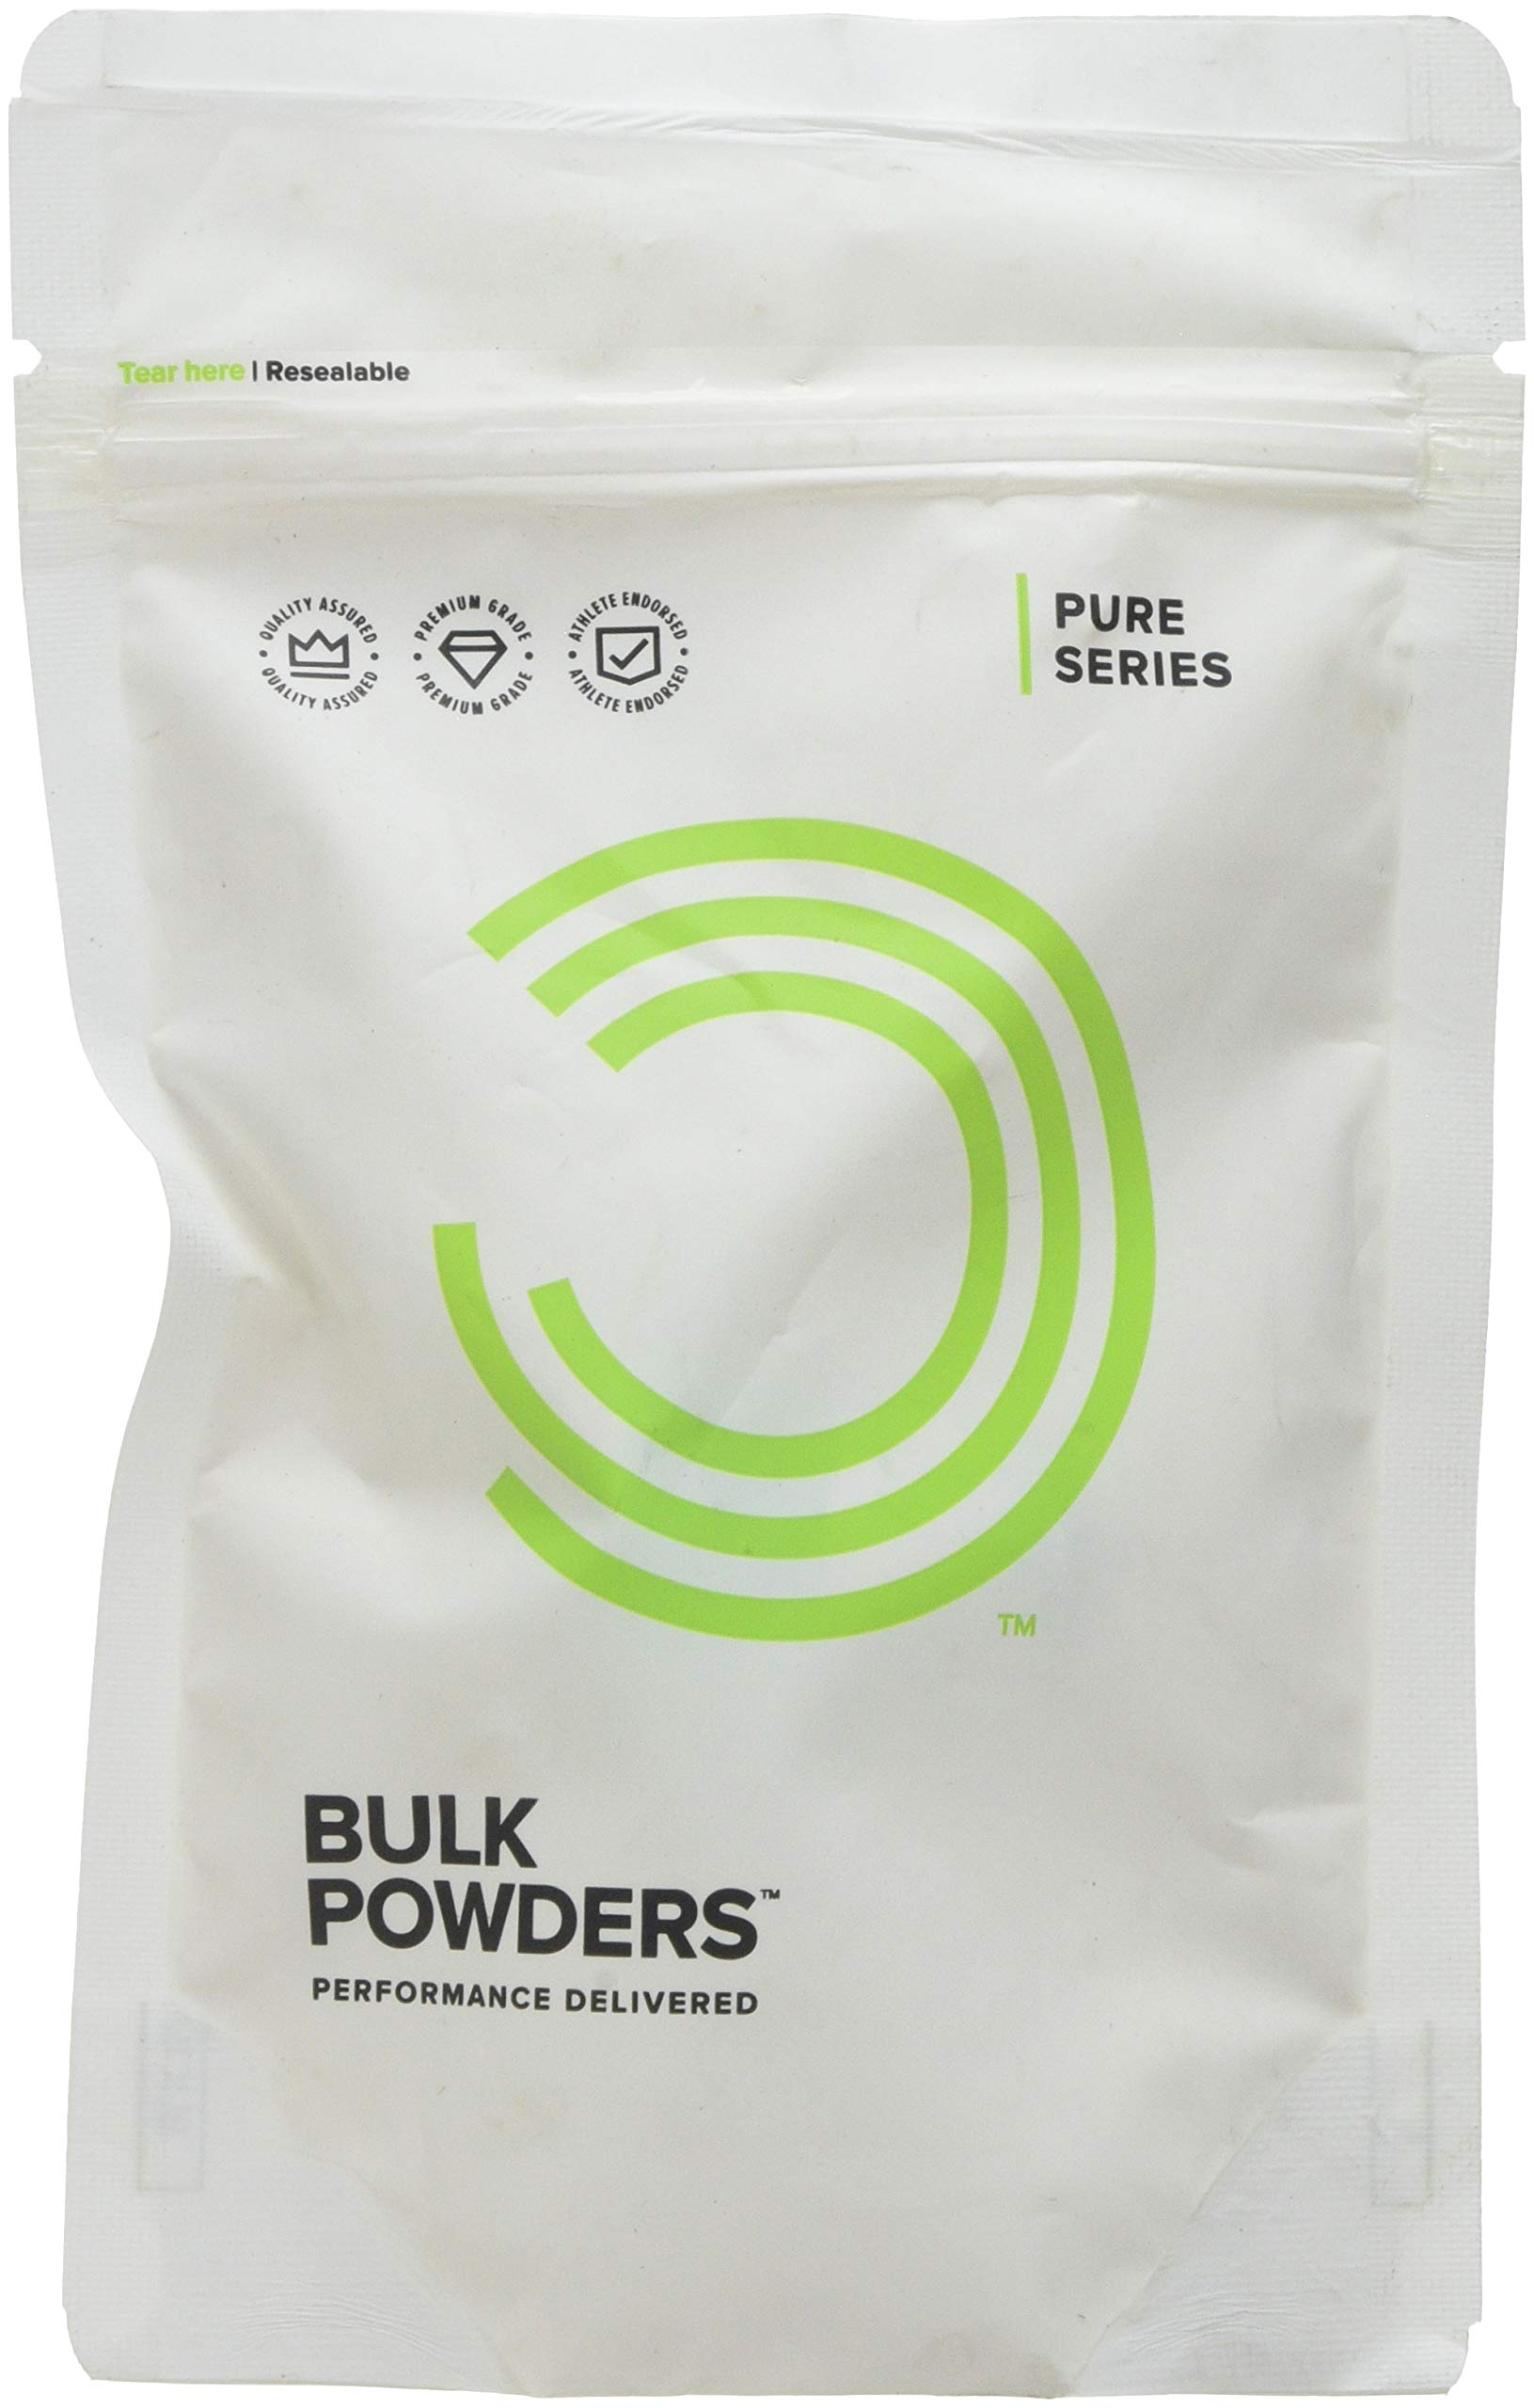 71QkycJ3reL - BULK POWDERS Pure Instant Branched Chain Amino Acids (BCAA) Powder, Mixed Berry, 100 g